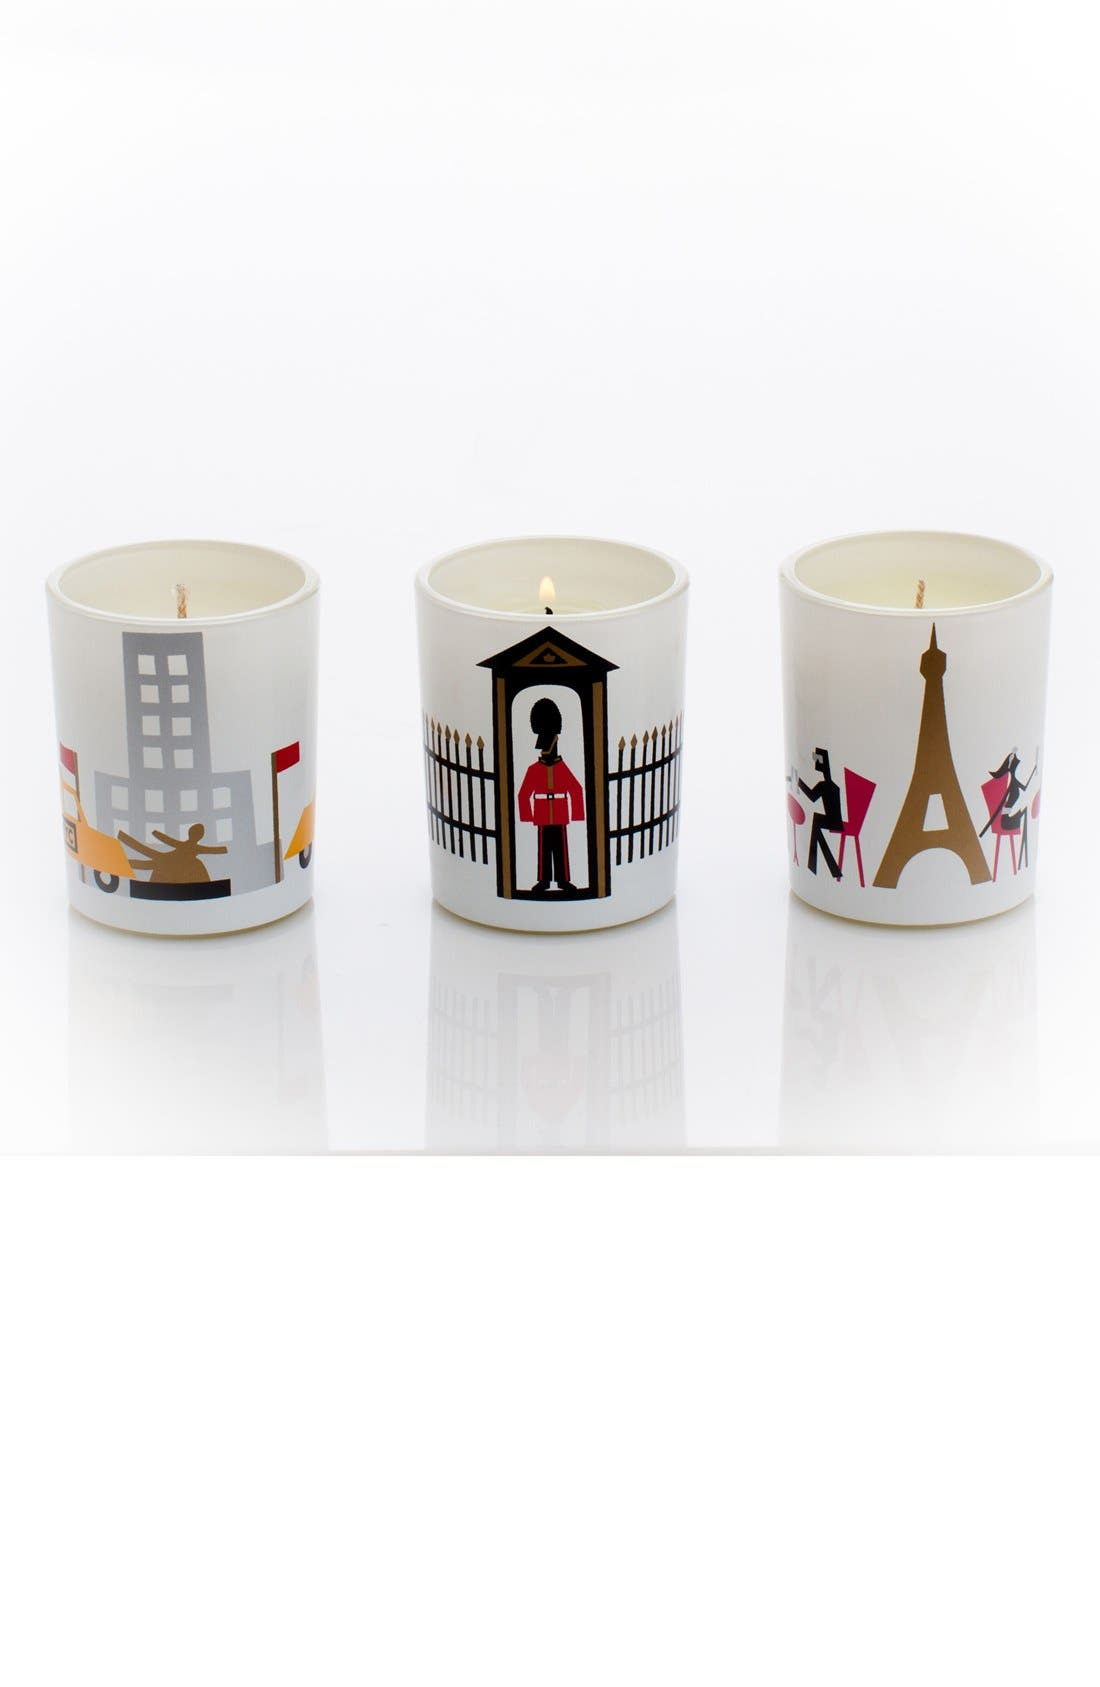 R. NICHOLS 'Jetsetter' Scented Votive Candles